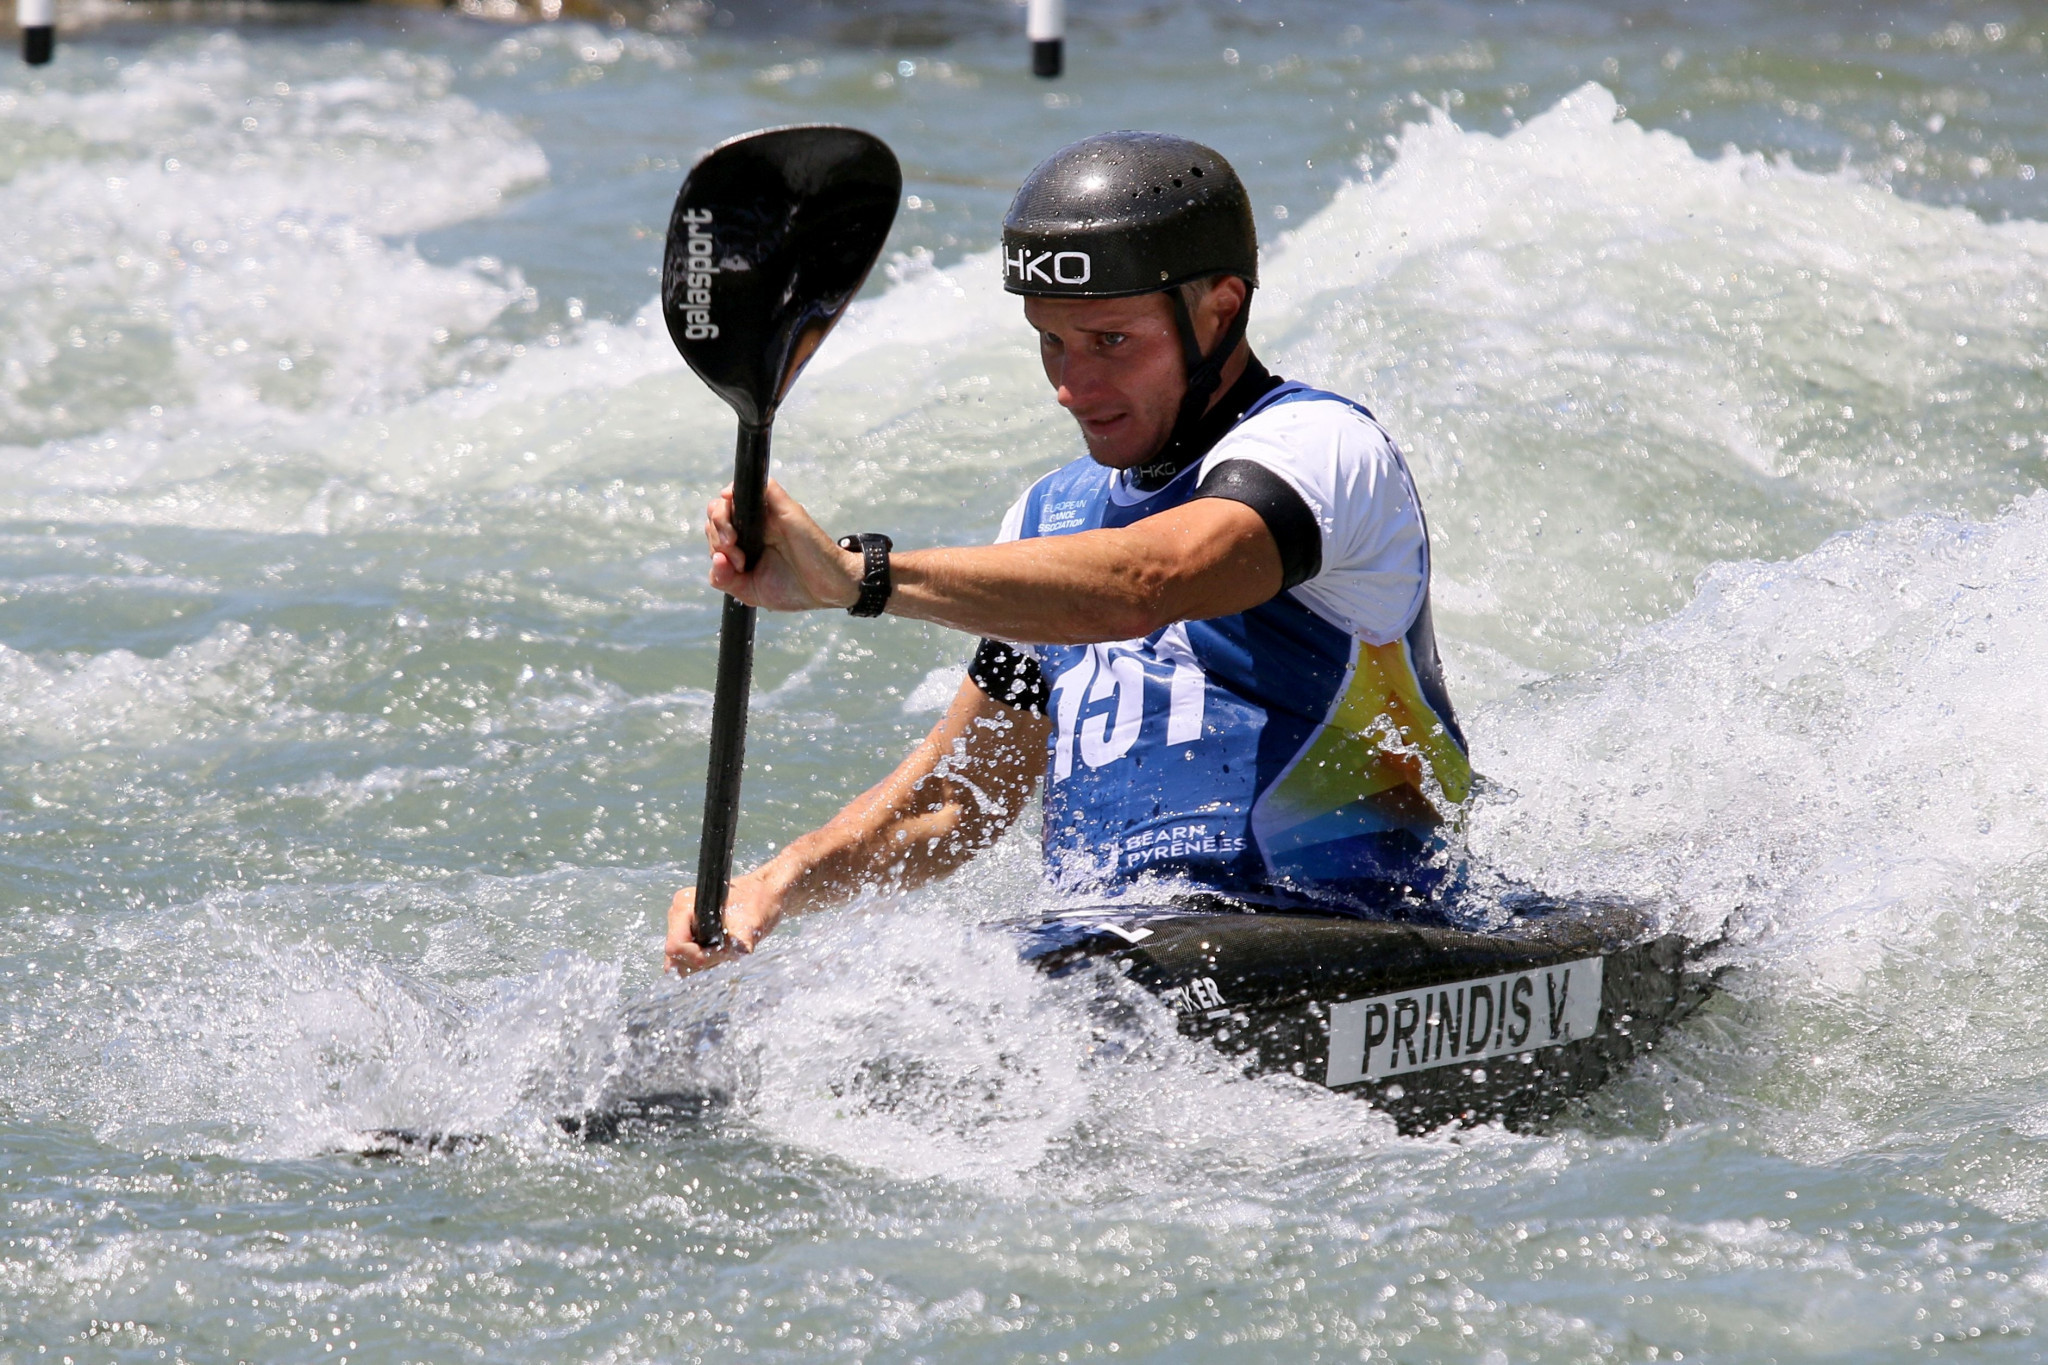 Czech paddler Vit Prindiš became European champion in the men's K1 event at the European Canoe Association European Canoe Slalom Championships ©ECA